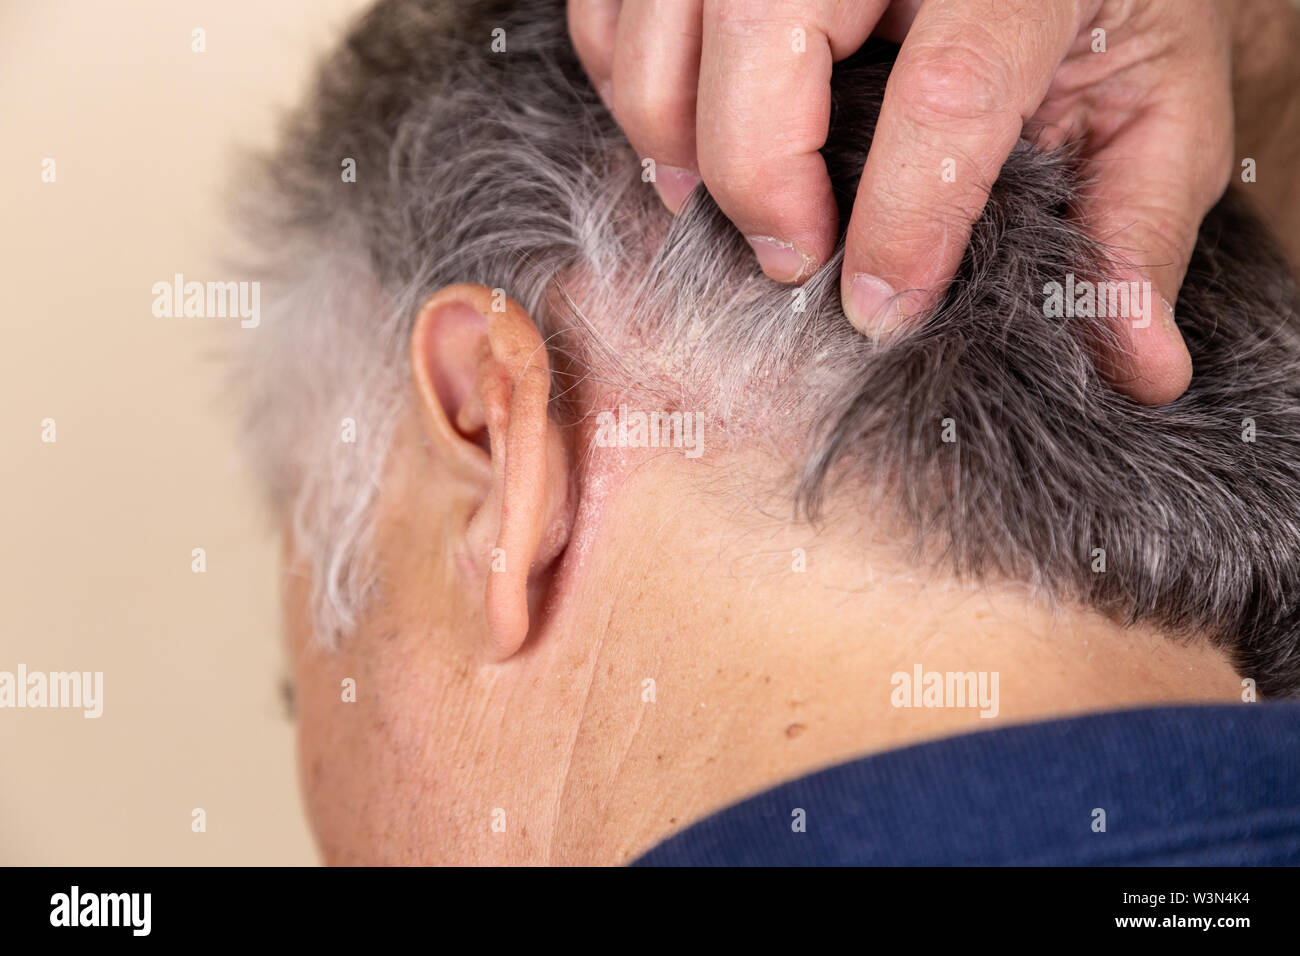 Psoriasis Vulgaris, psoriatic skin disease in hair, skin patches are typicaly red, itchy, and scaly, macro with narrow focus. - Stock Image